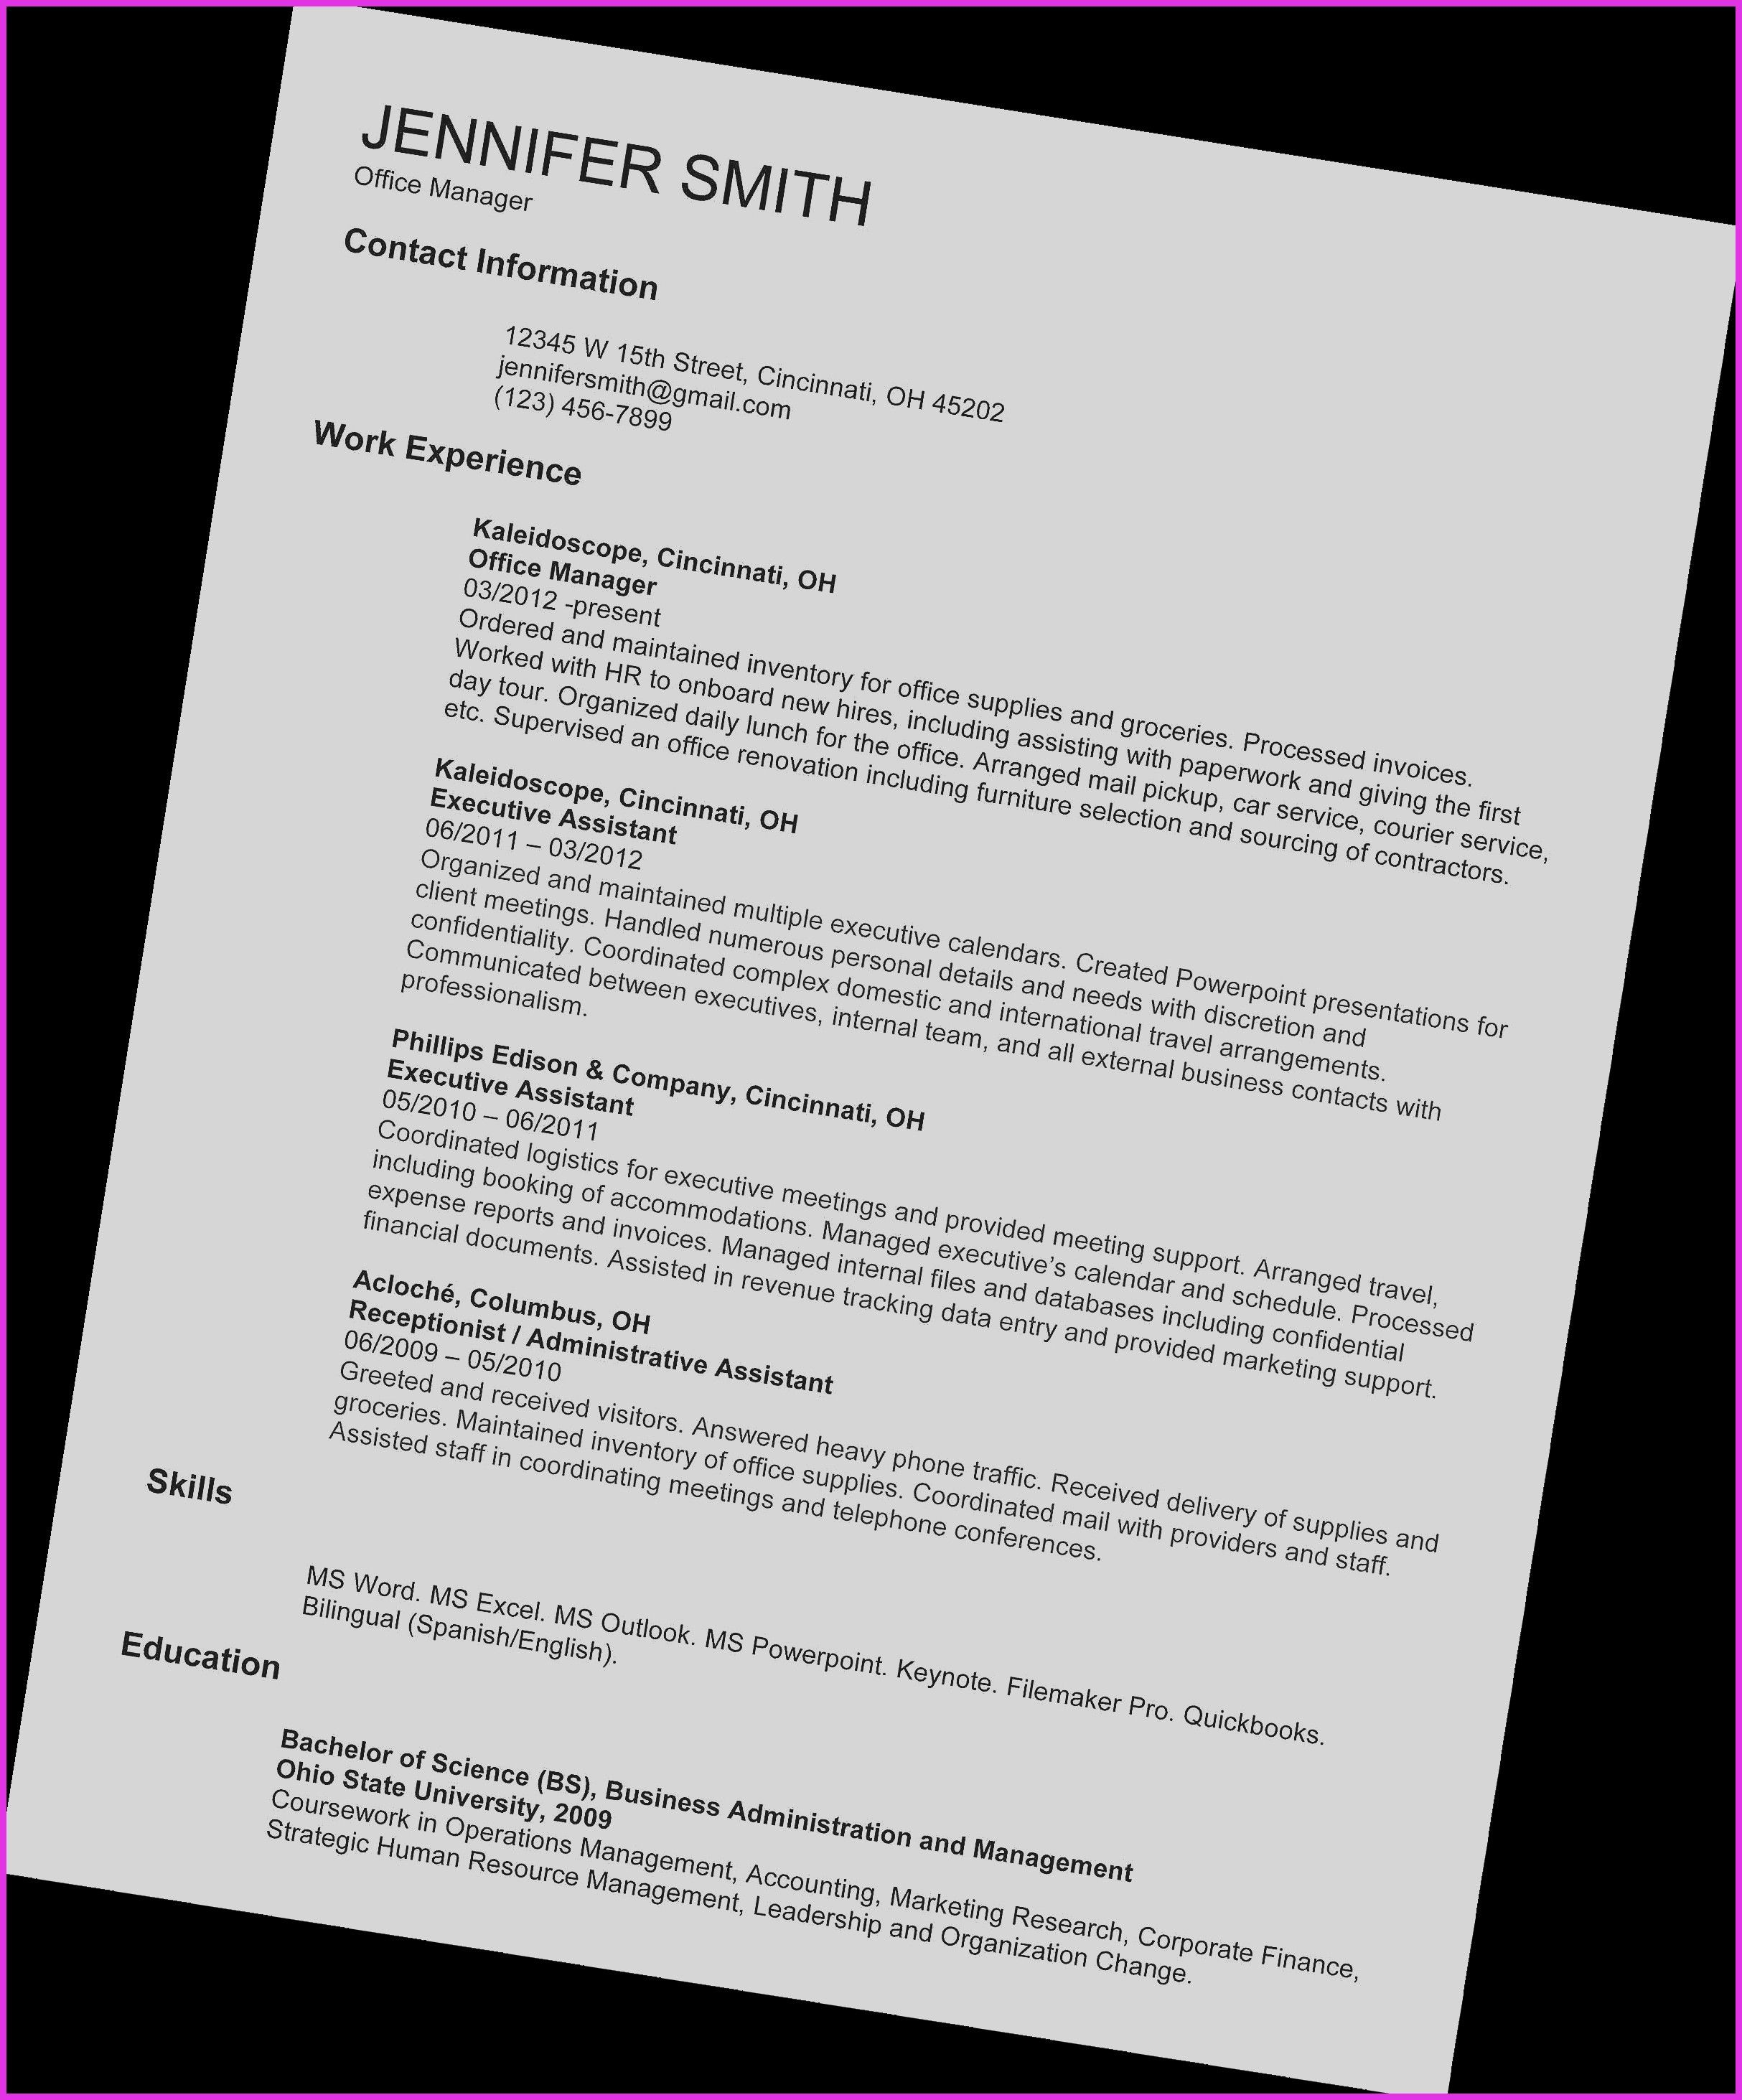 ¢Ë†Å¡ Top Fresh Grapher Resume Sample Beautiful Resume Quotes 0d